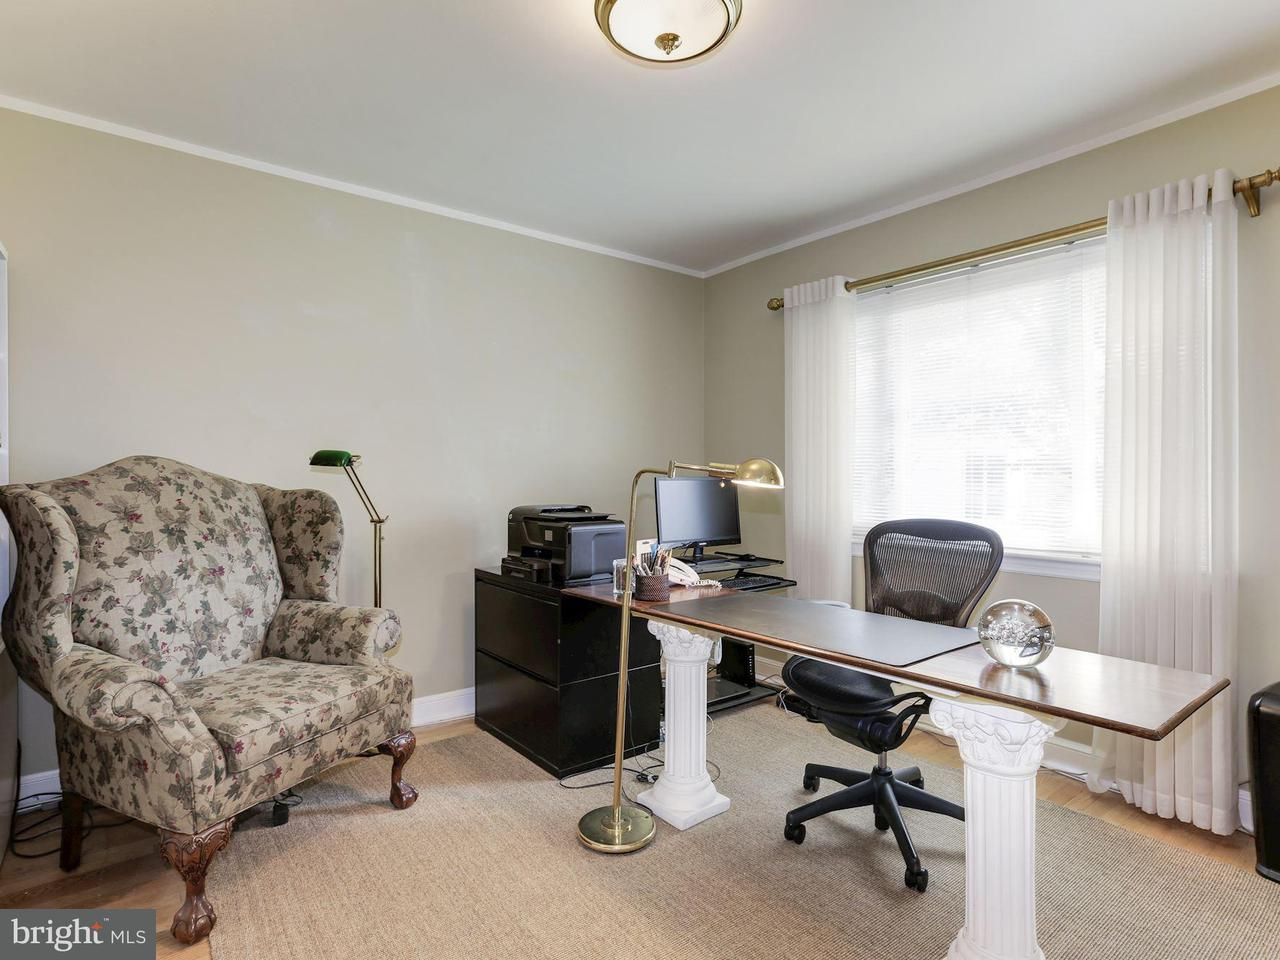 Additional photo for property listing at 1461 NORTHGATE RD NW 1461 NORTHGATE RD NW Washington, District Of Columbia 20012 United States